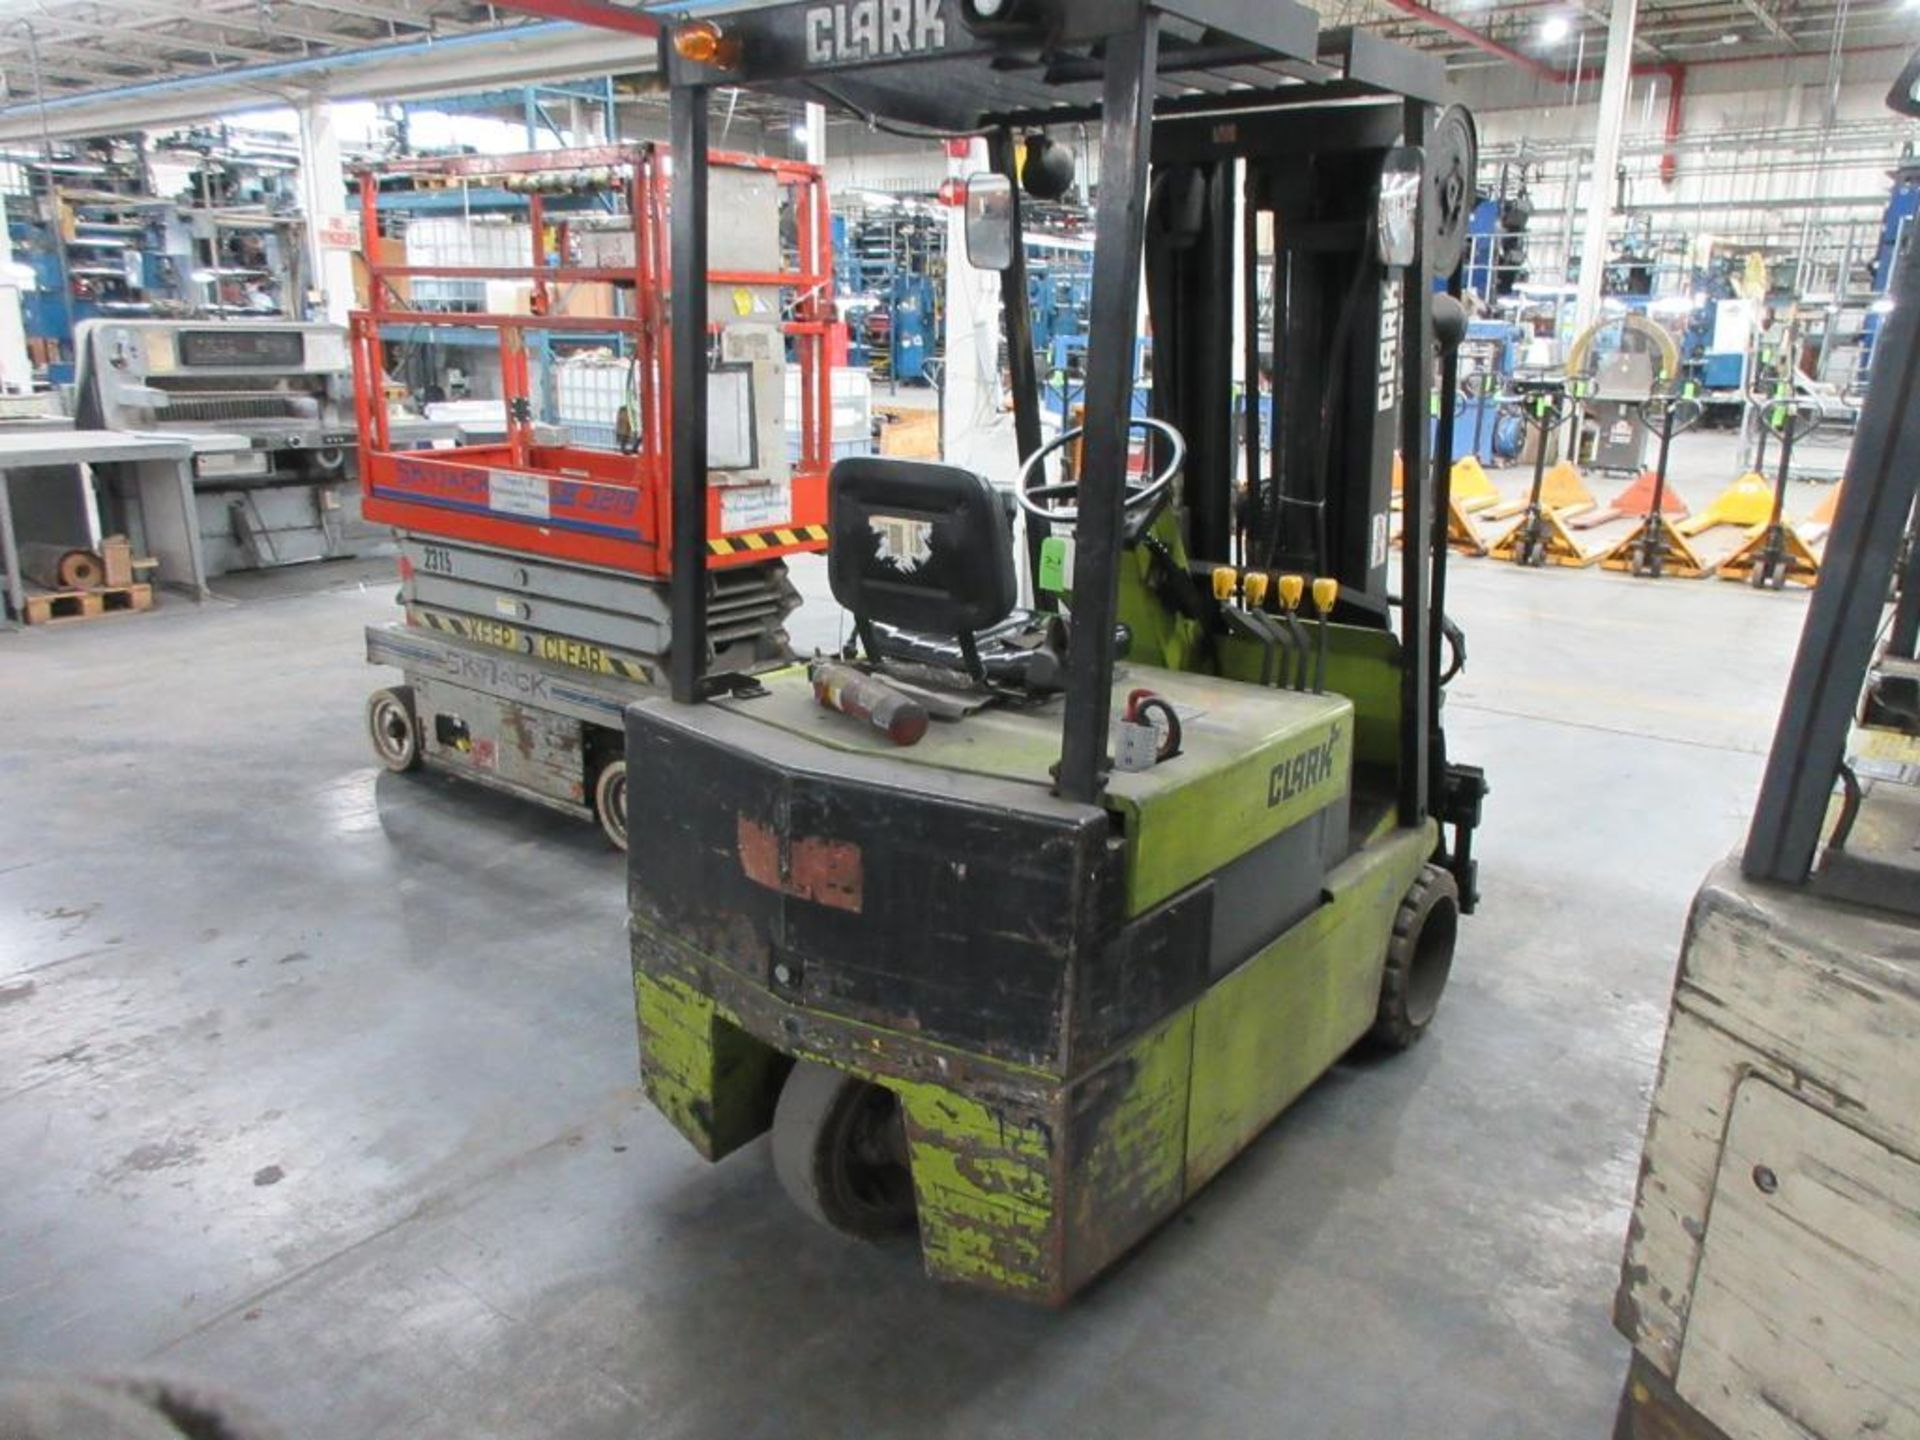 """Clark 4,500 lb capacity, 3 wheel electric clamp forklift, model TM25, 3 stage mast, 186"""" lift height - Image 5 of 10"""